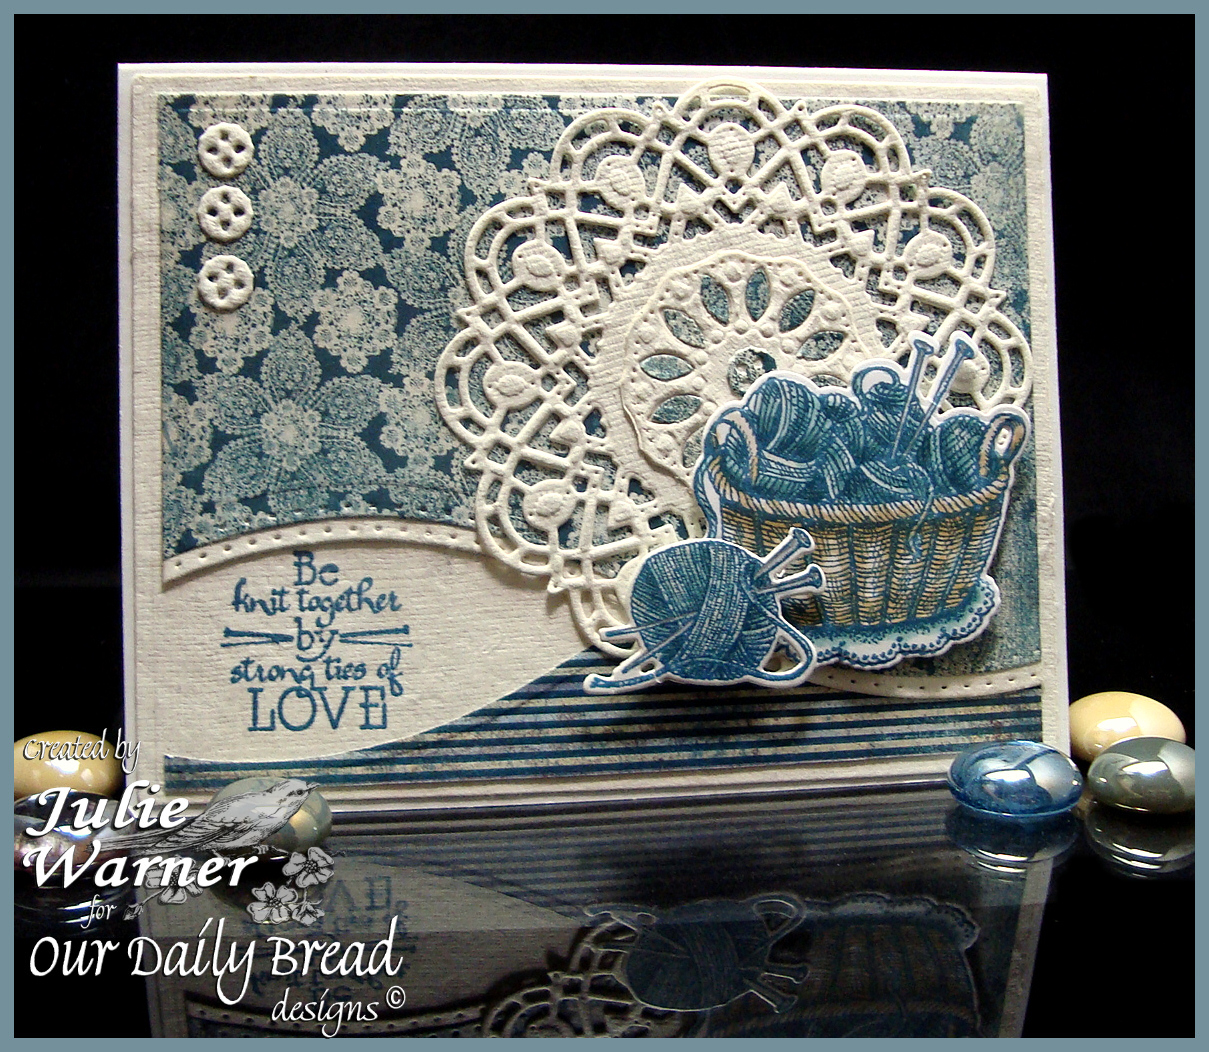 Stamps - Our Daily Bread Designs Hand Knit, ODBD Custom Knitting Basket & Yarn Dies, ODBD Custom Doily Dies